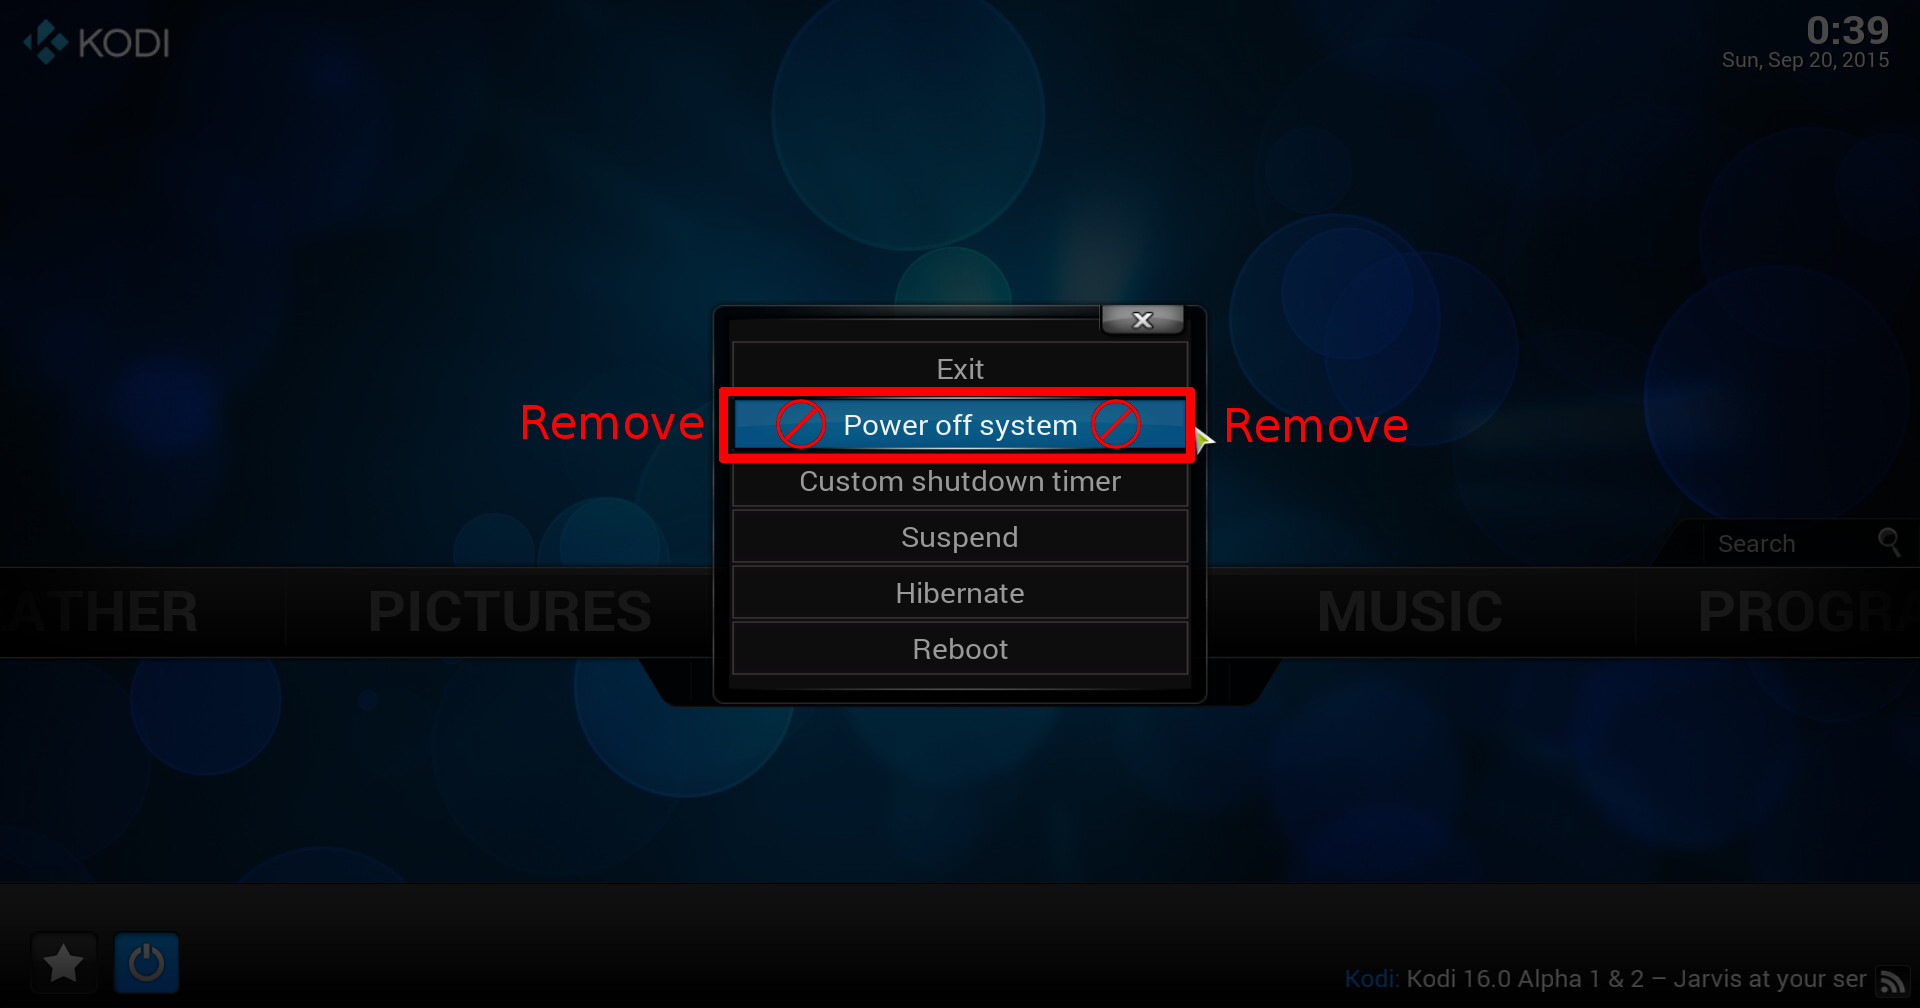 Remove kodi's Power off system entry